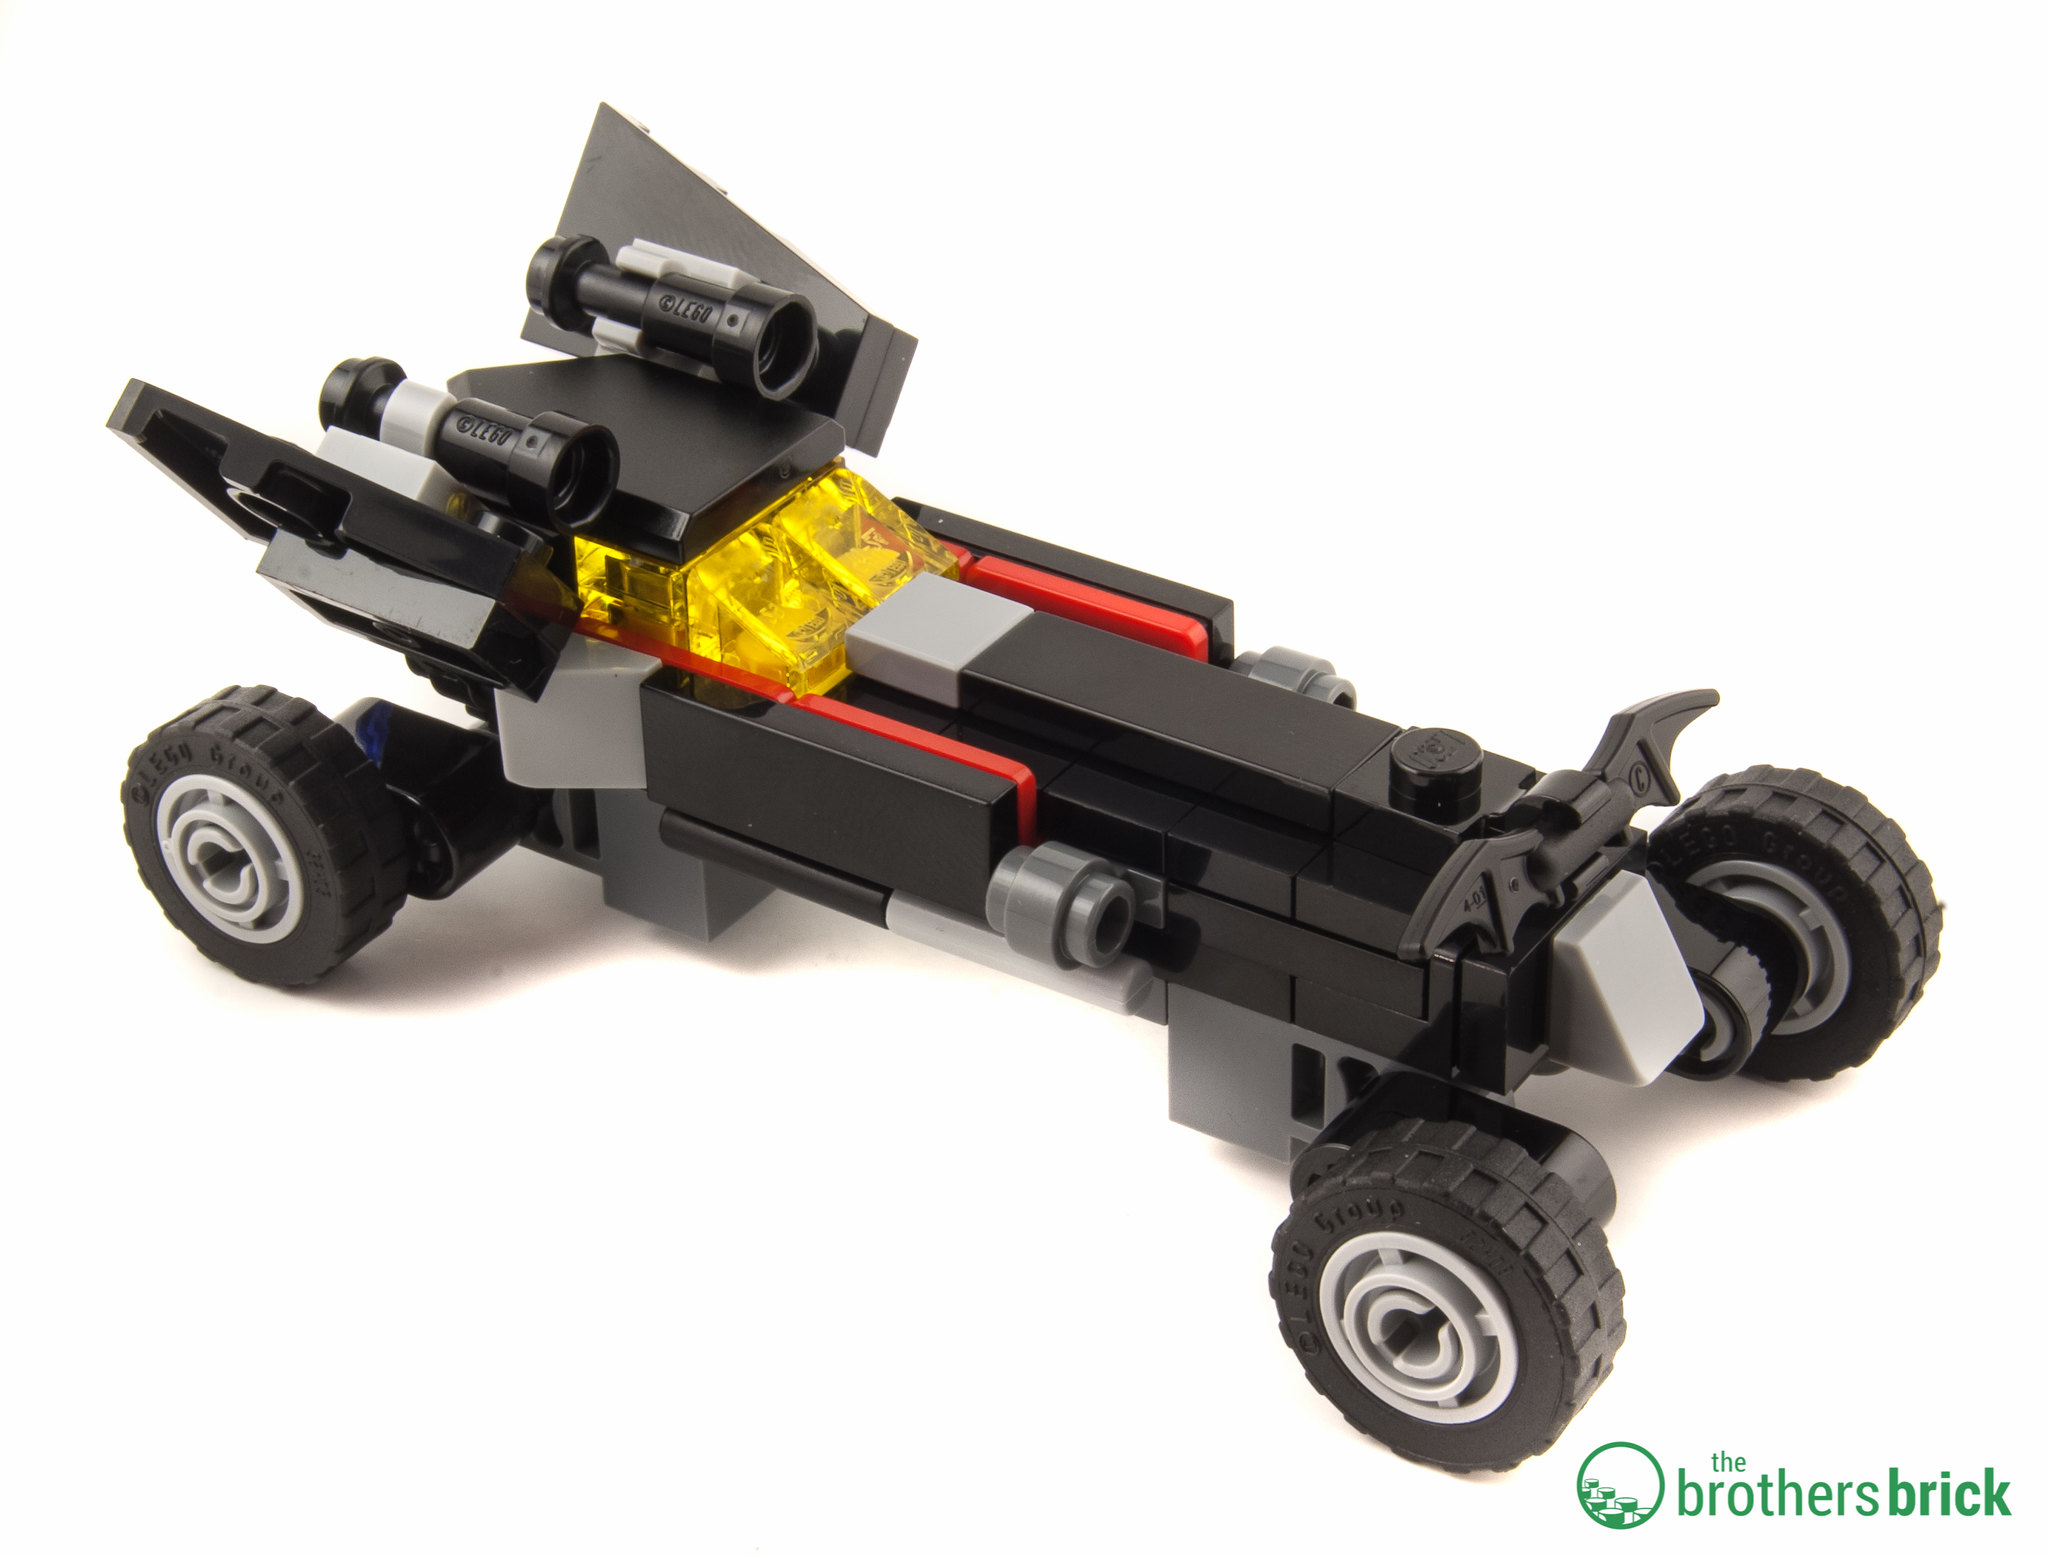 new lego batman movie batmobile batwing mini sets revealed review the brothers brick the. Black Bedroom Furniture Sets. Home Design Ideas